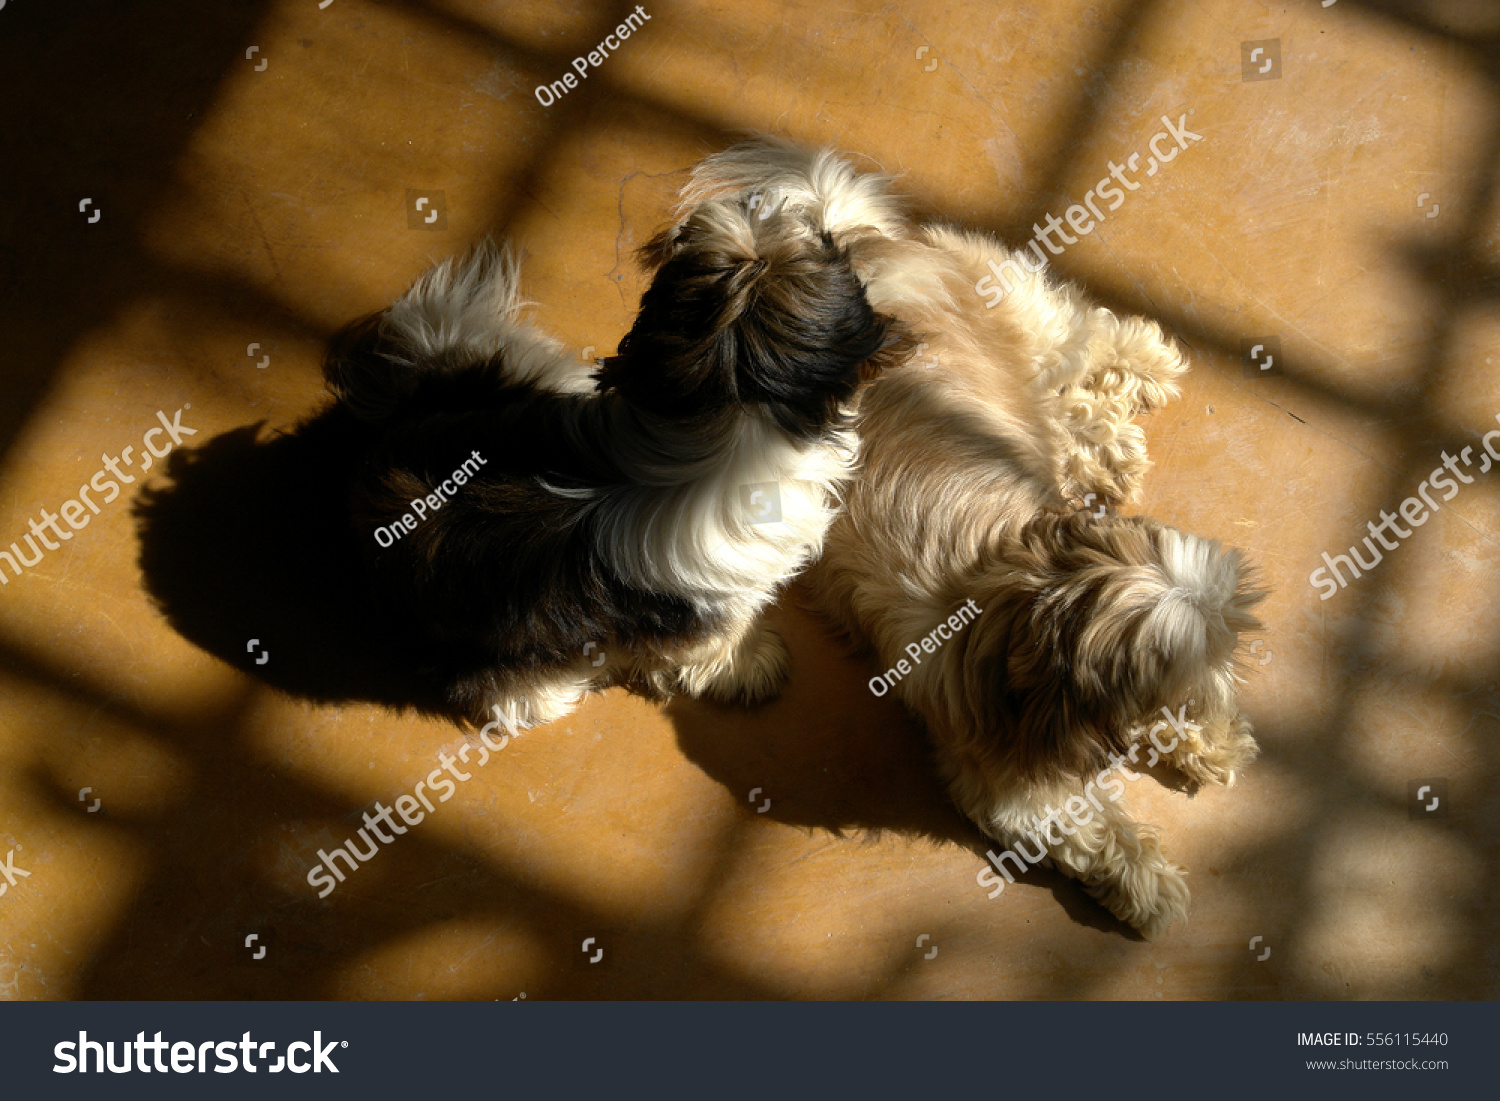 Fantastic Fluffy Brown Adorable Dog - stock-photo-fluffy-furry-hairy-cute-adorable-dog-brown-and-white-laying-resting-sleeping-on-wooden-floor-with-556115440  Pictures_3197  .jpg